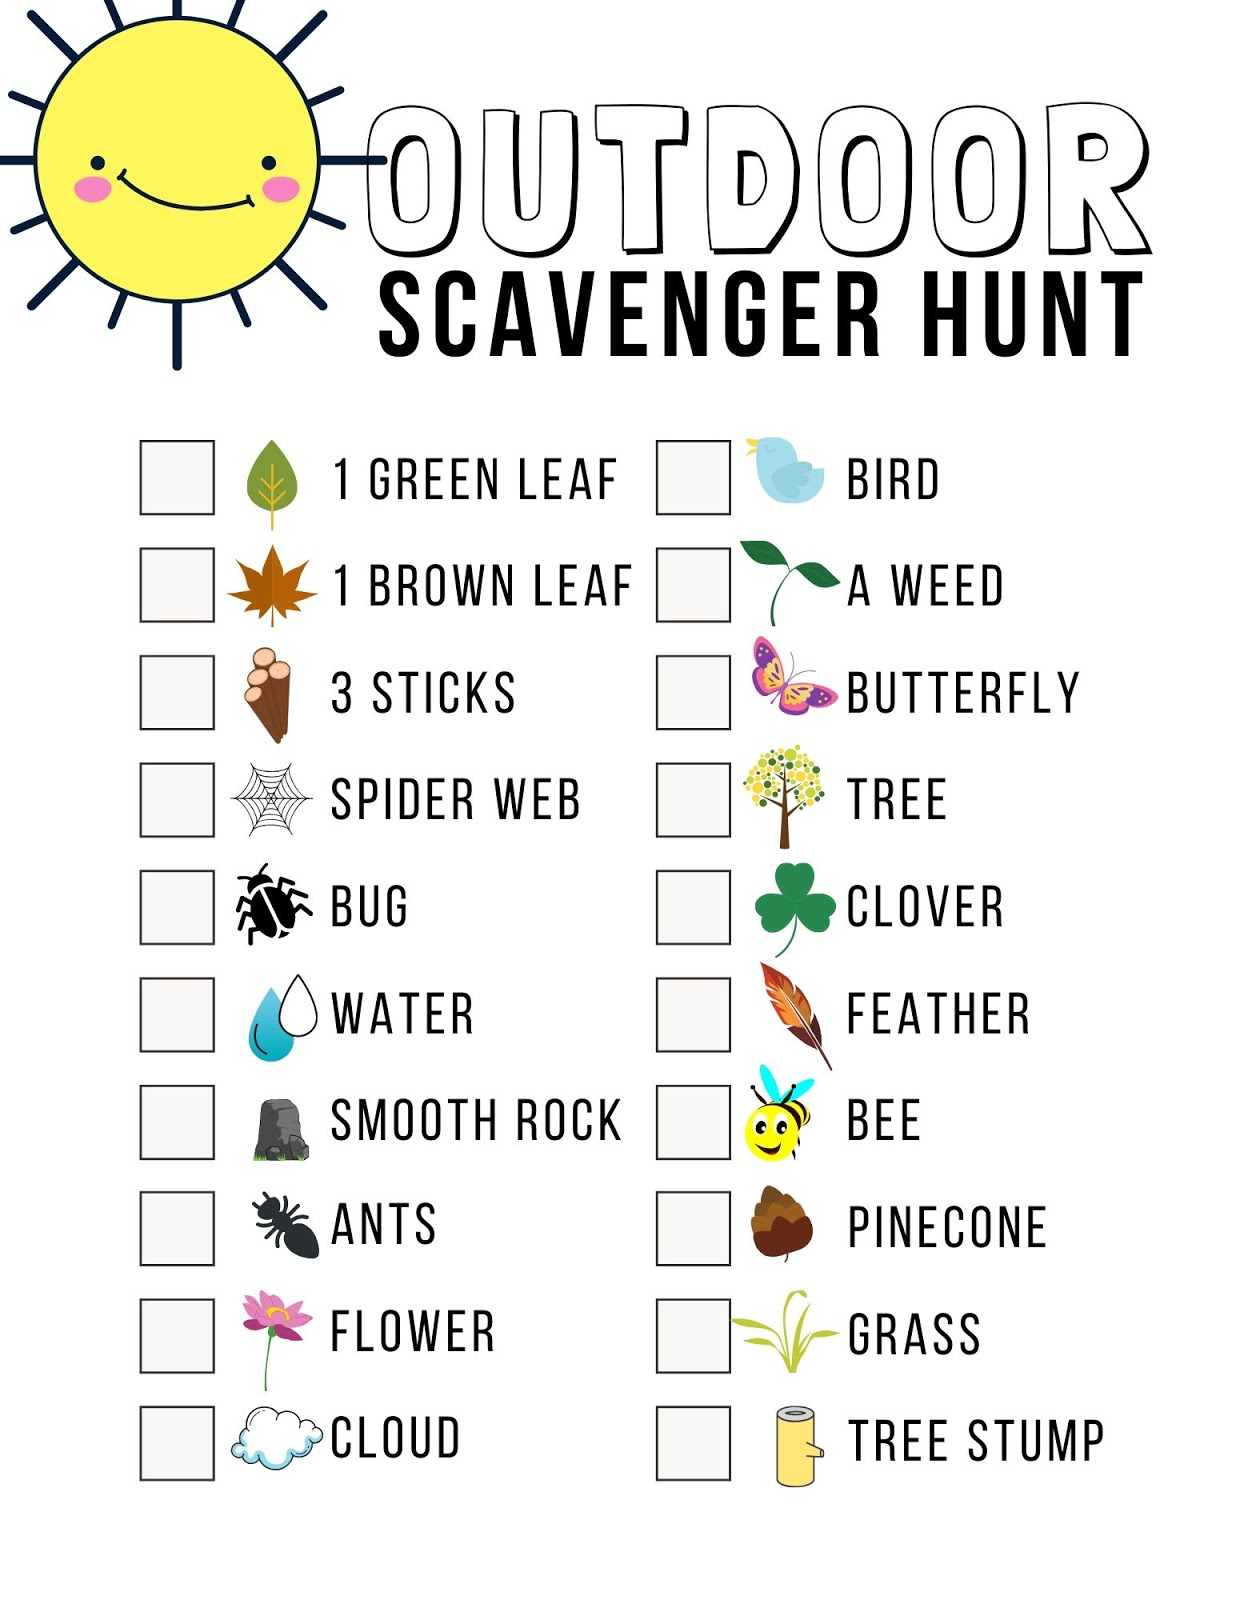 10 Of The Best Scavenger Hunt Ideas For Family Fun With